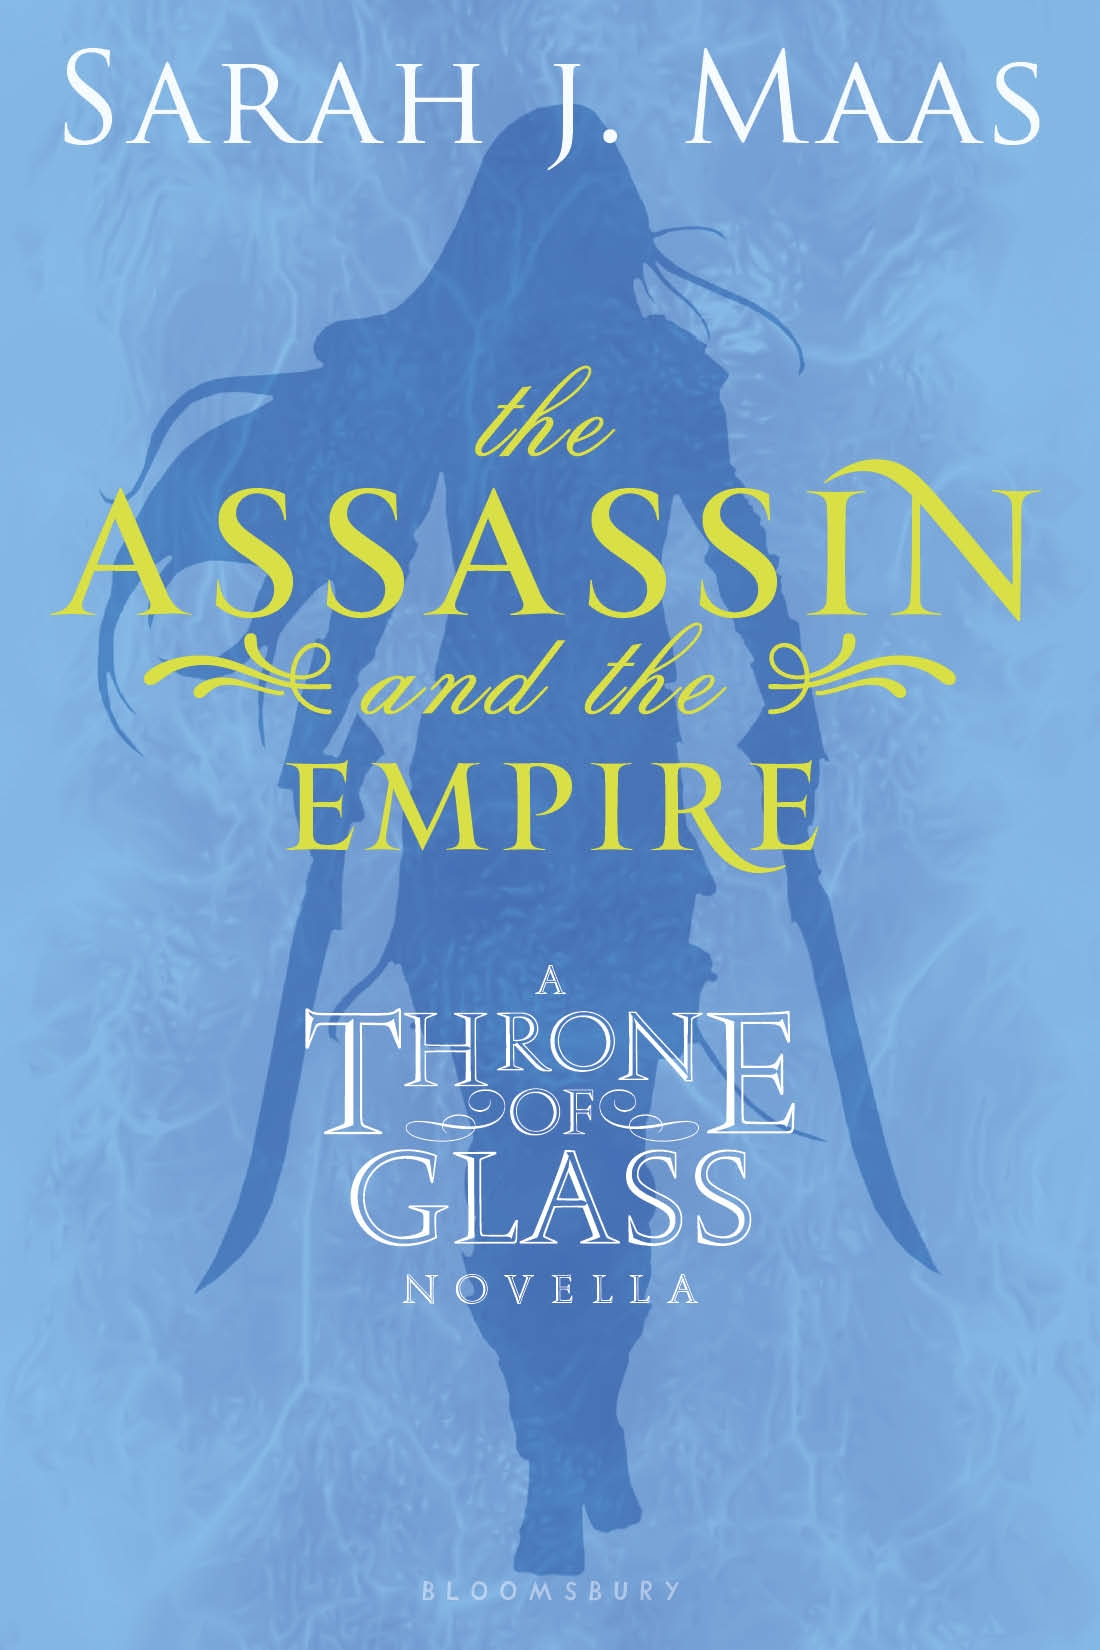 The Assassin and the Empire By: Sarah J. Maas